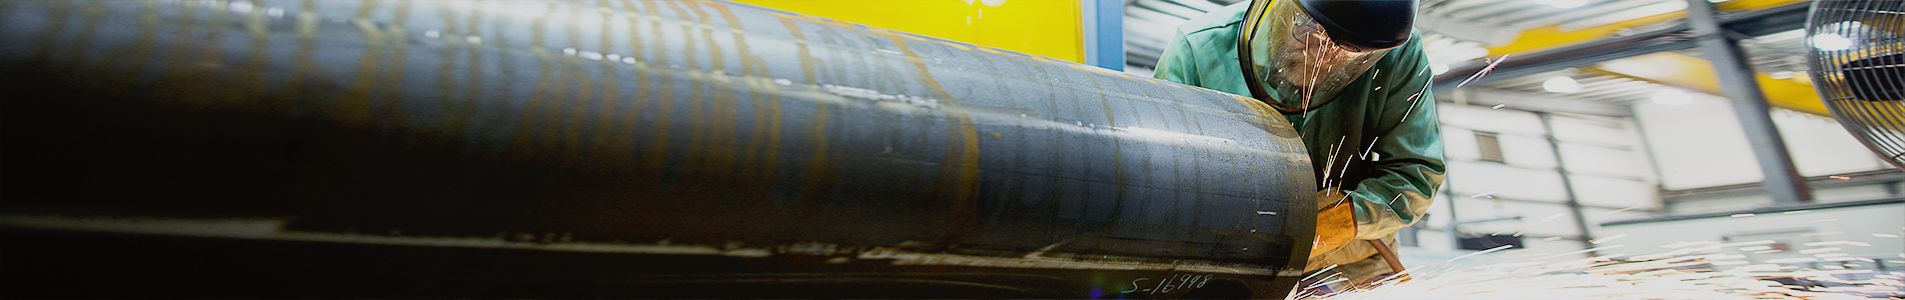 welding large tubular utility tube